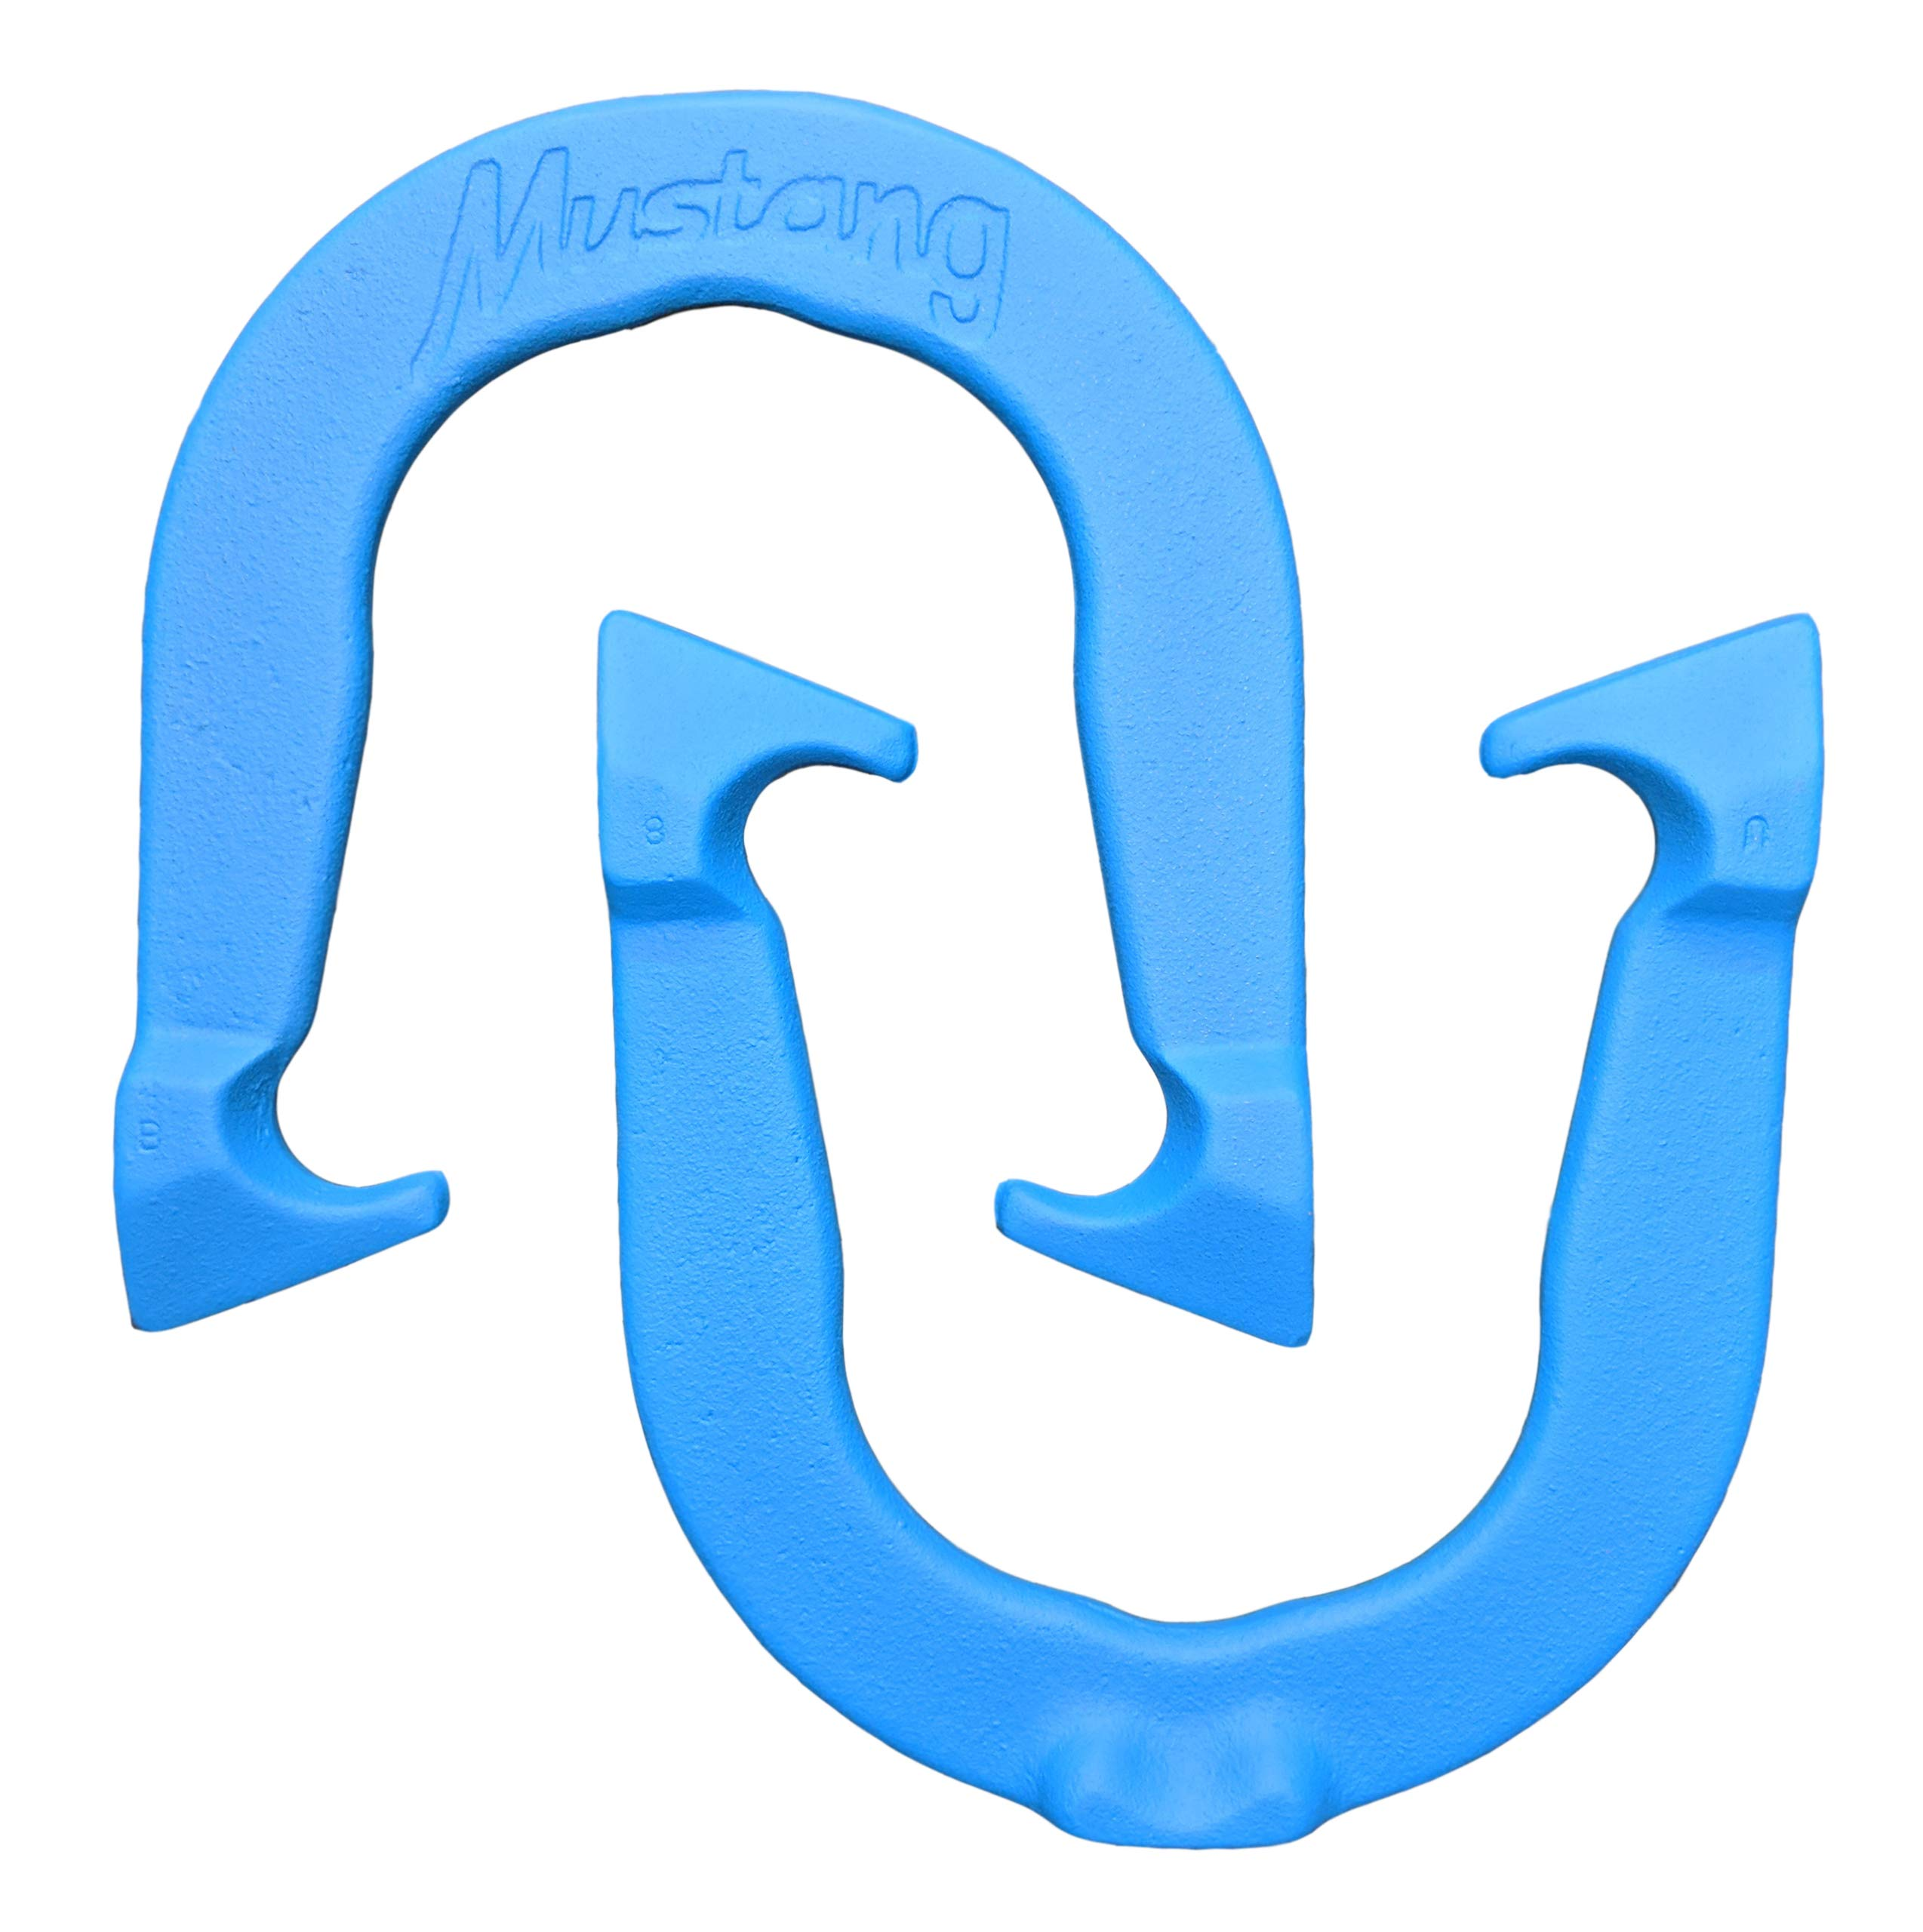 Mustang Professional Pitching Horseshoes- Made in USA (Blue- Single Pair (2 Shoes)) by Thoroughbred Horseshoes